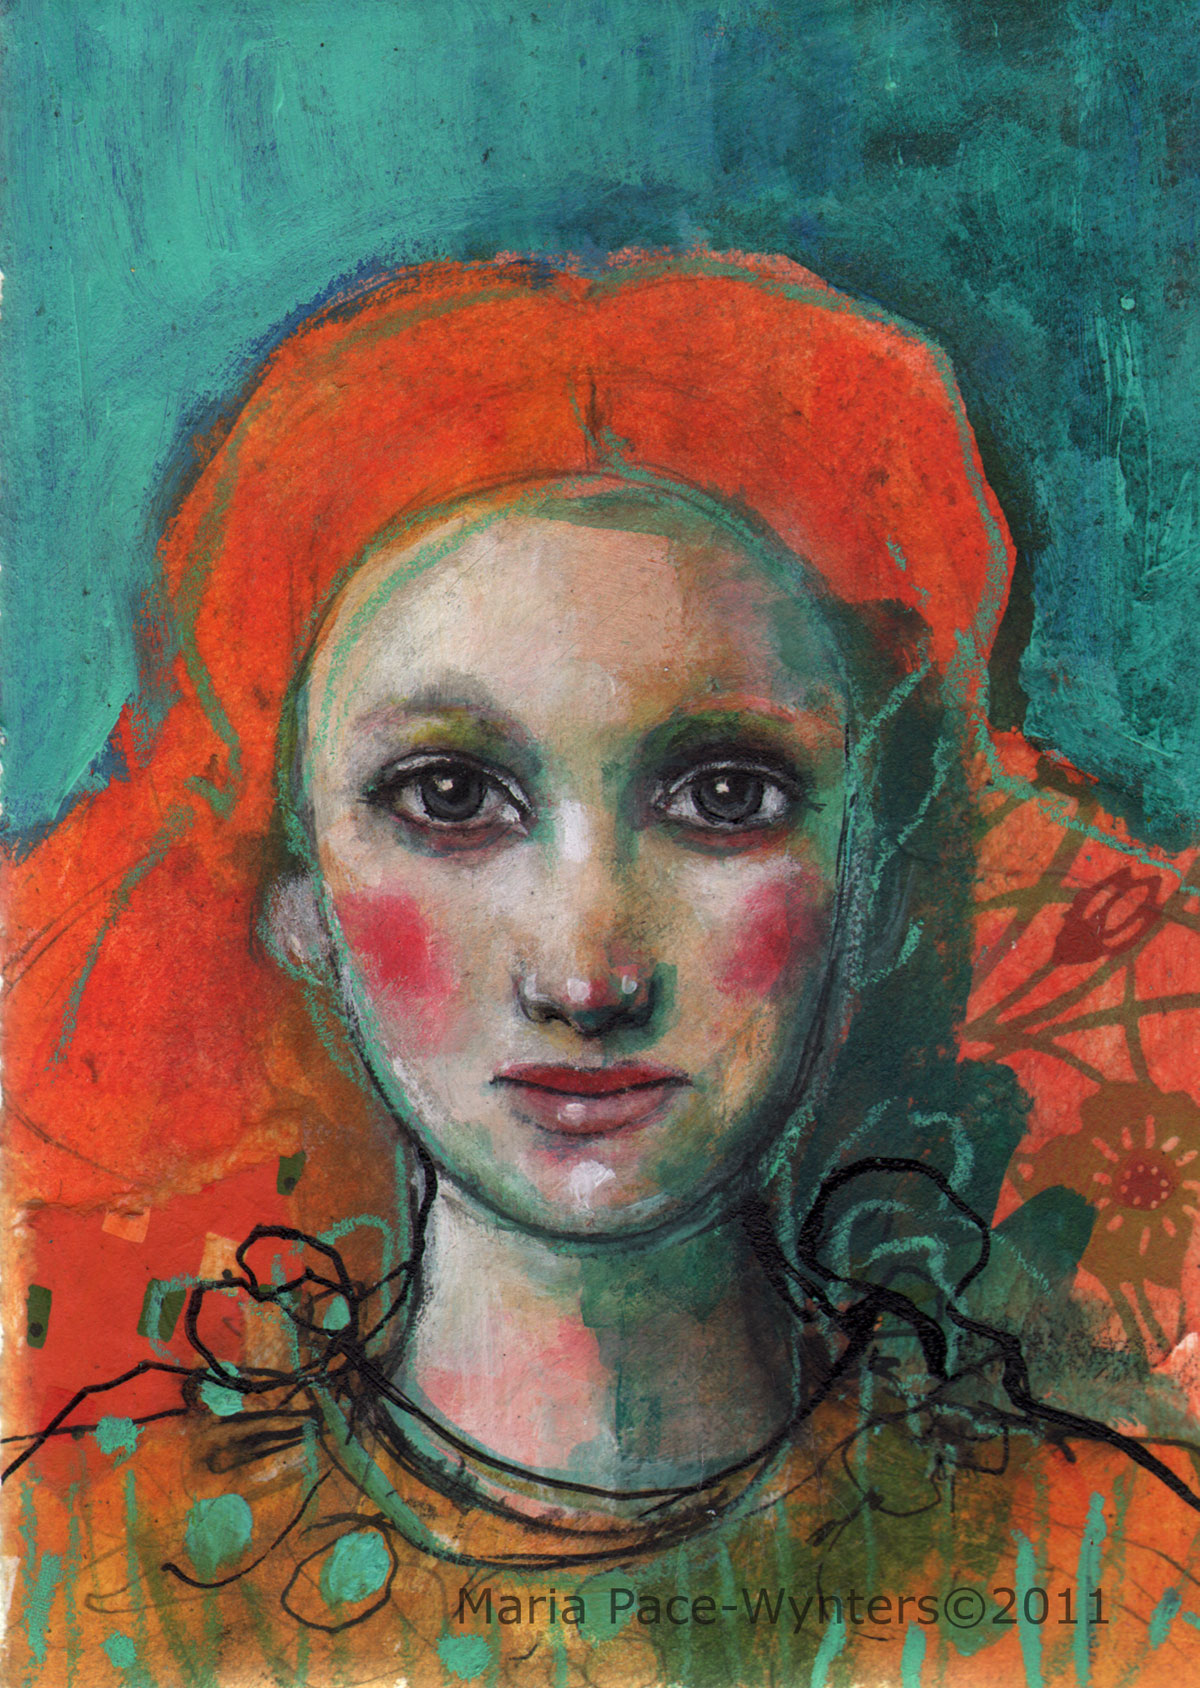 Red Hair Maria Pace Wynters